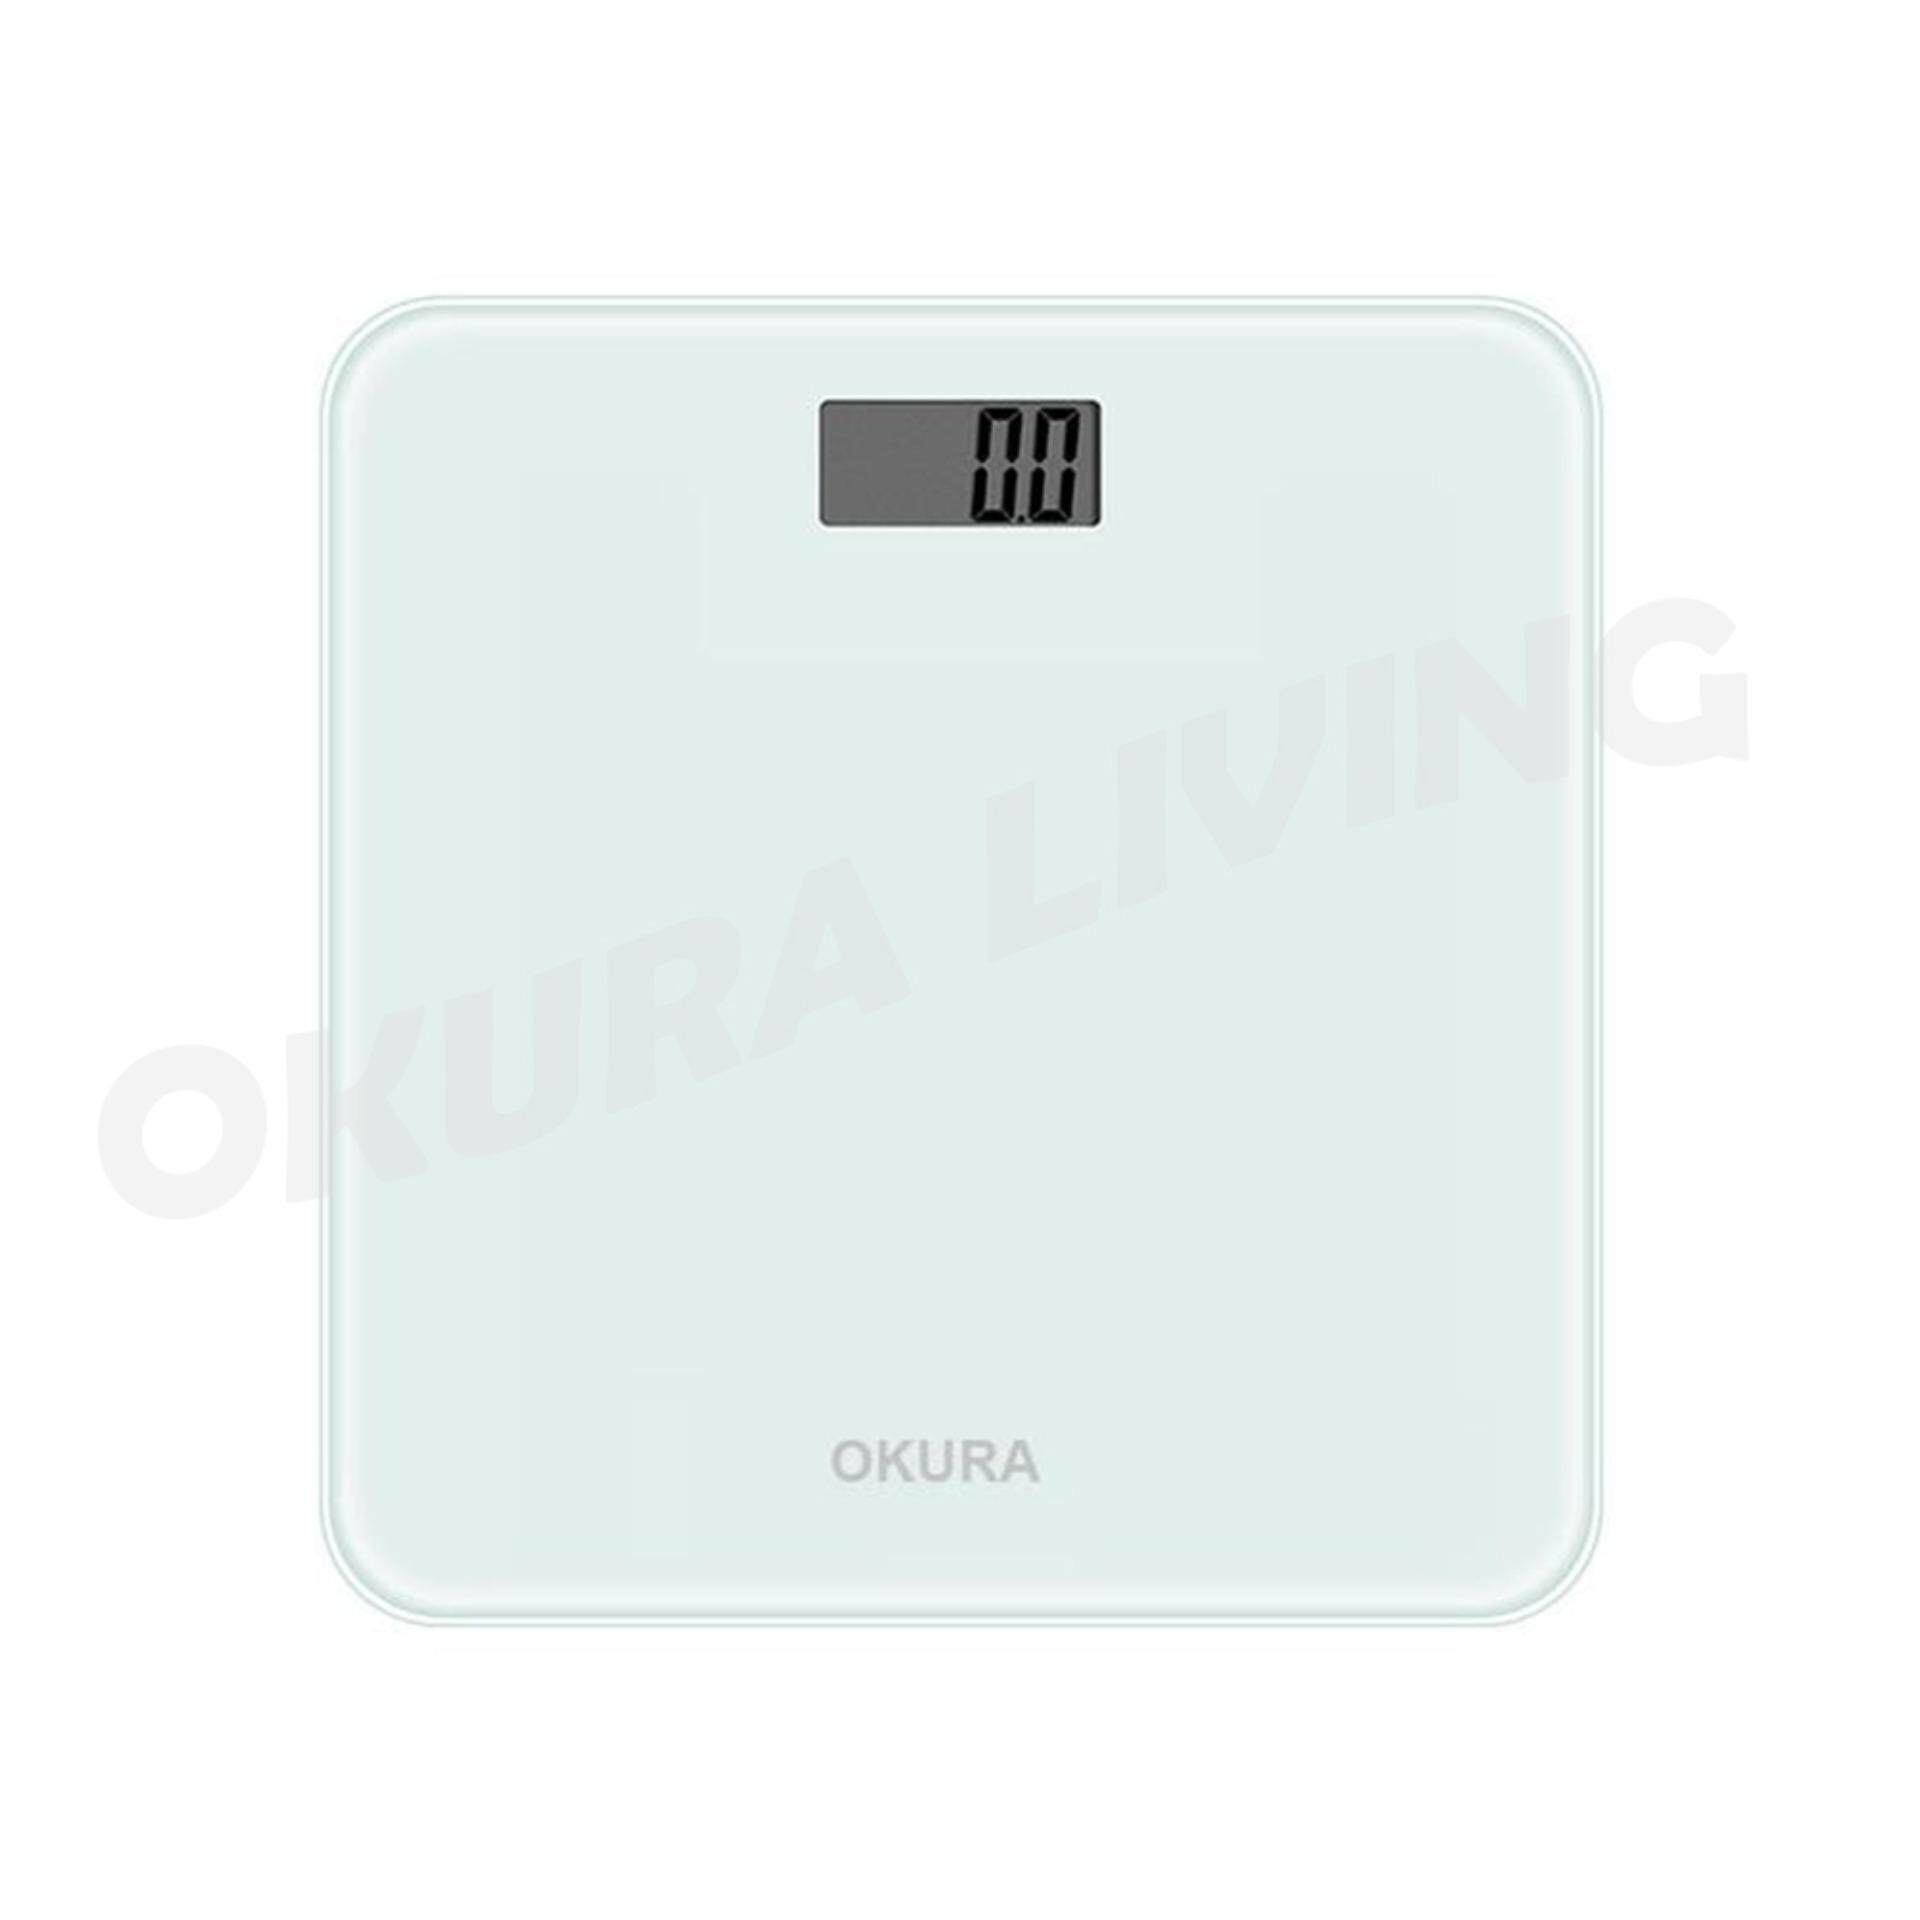 OKURA 28cm Personal Digital Weighing Scale LED Screen With Room Temperature